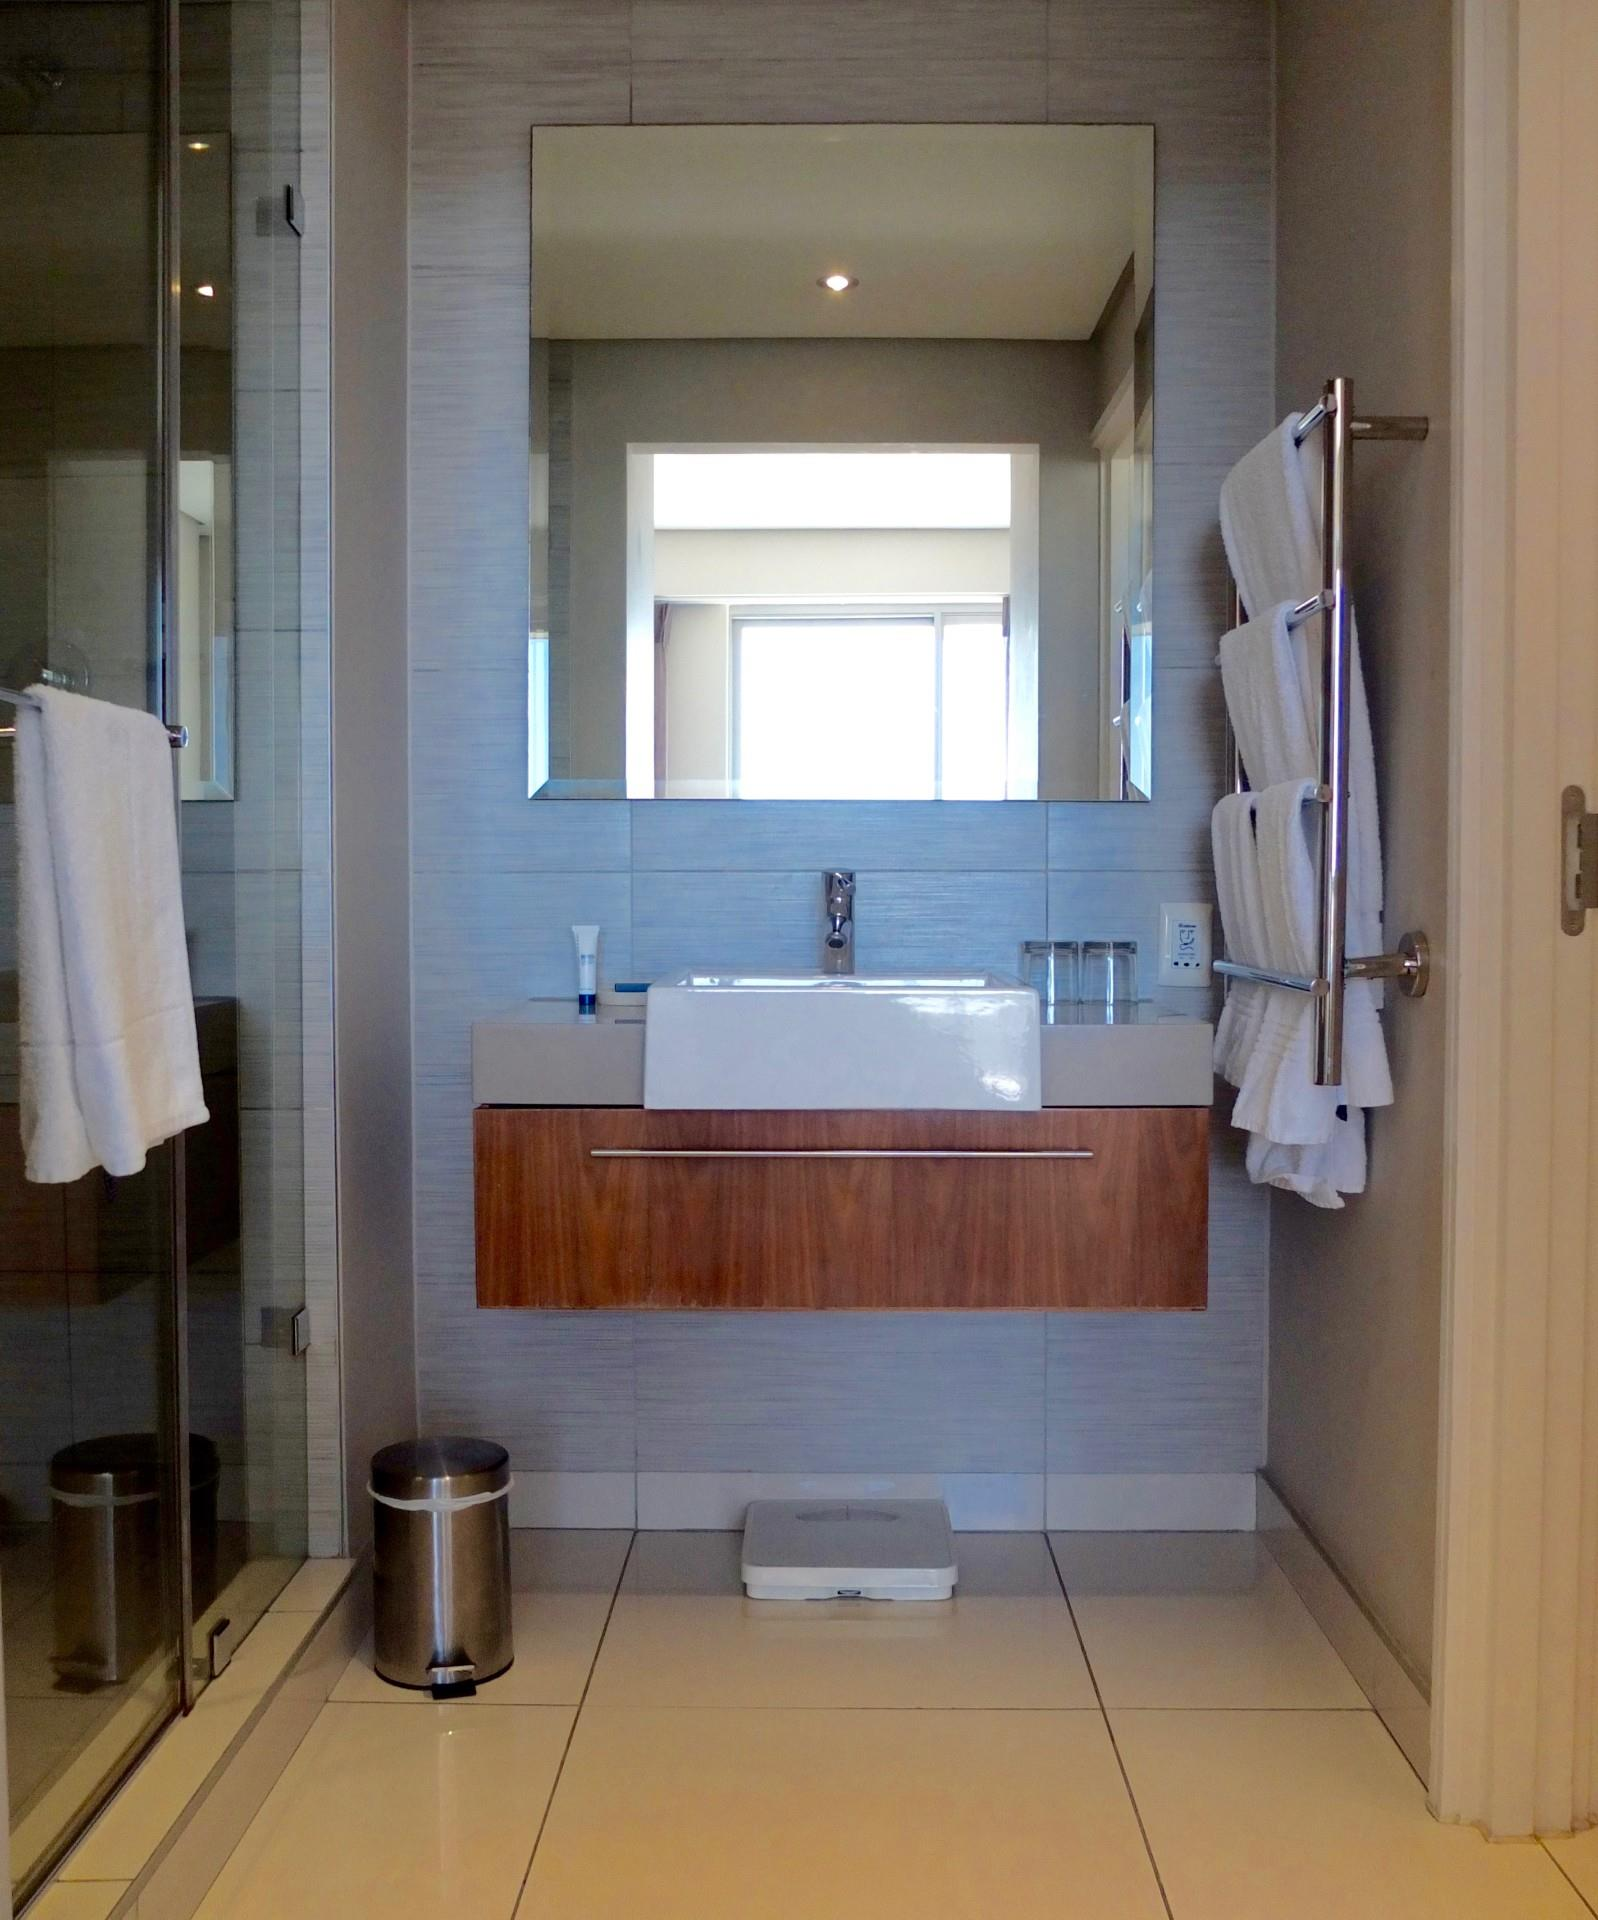 2 Bedroom Apartment / Flat For Sale in Cape Town City Centre